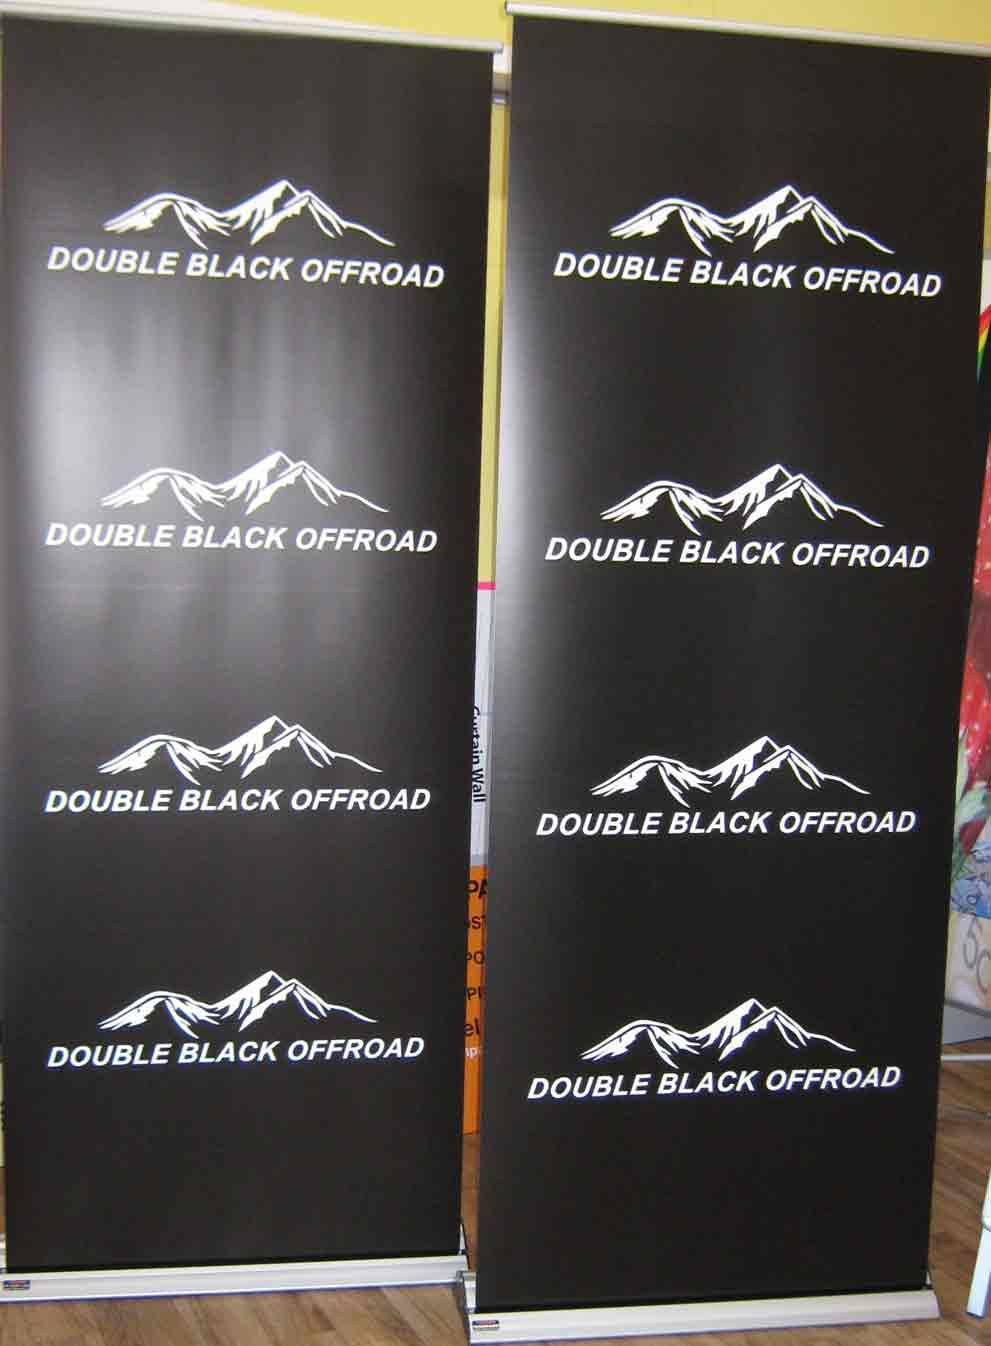 Double Black Offroad Pull up Banners